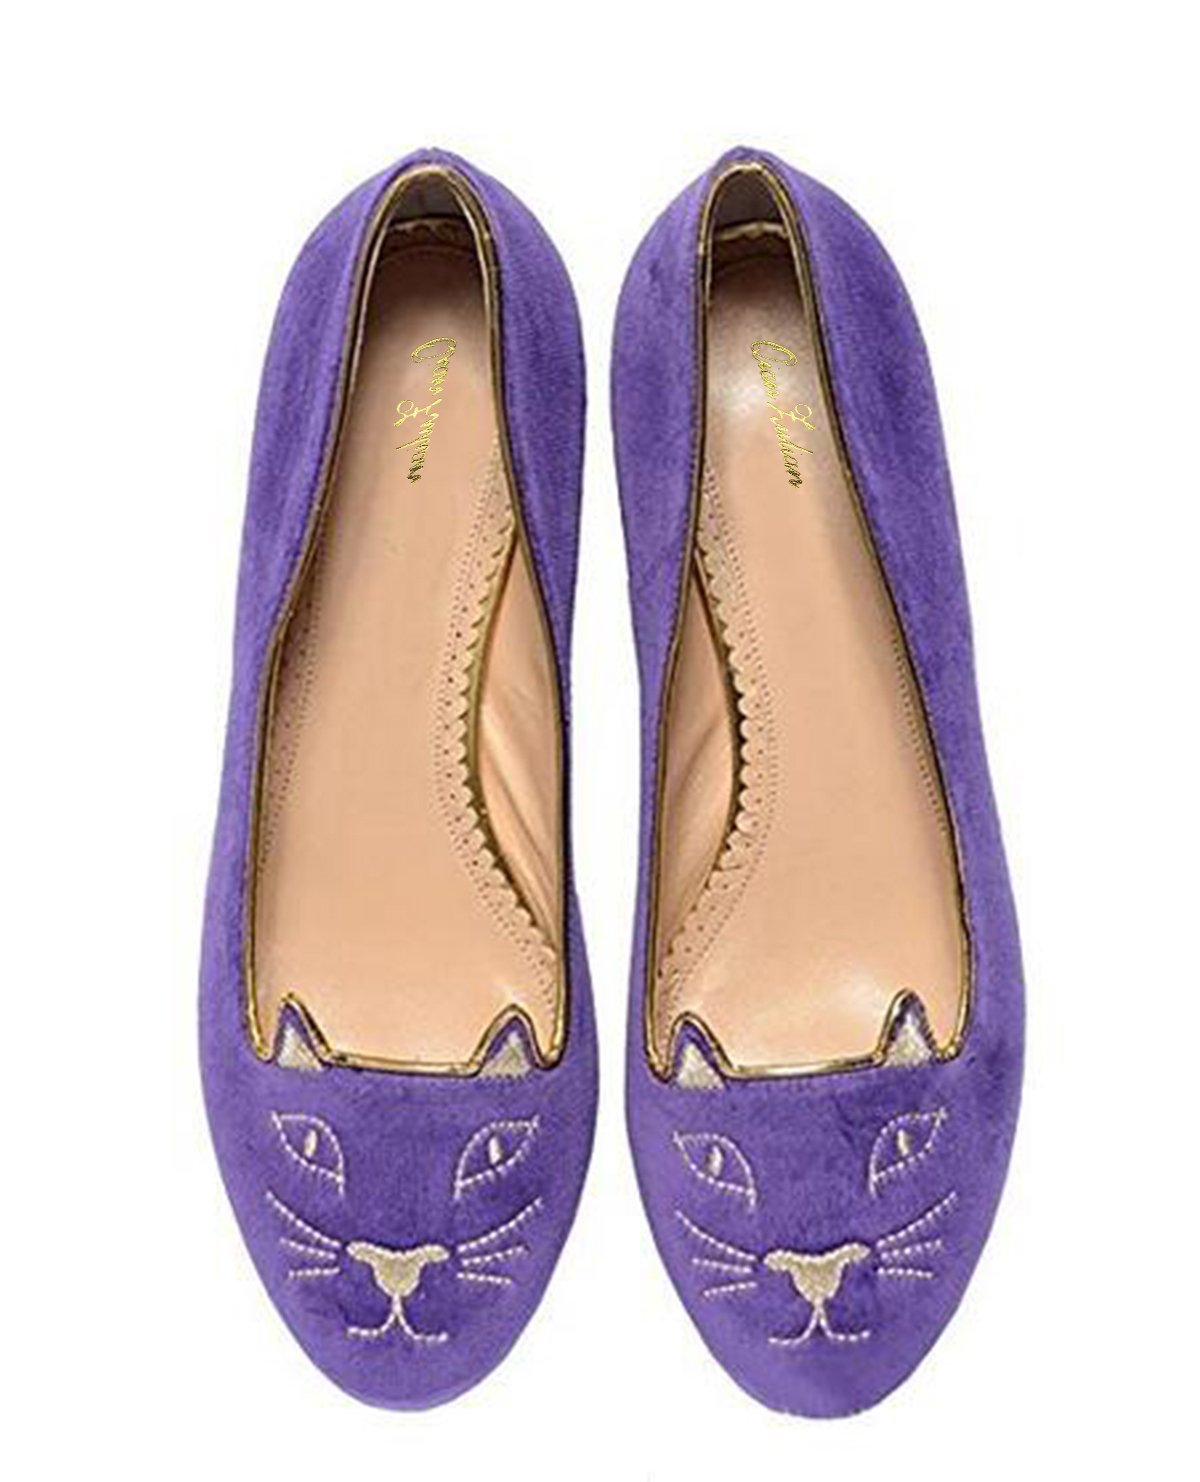 QianZuLian Womens Flats Cat Shape Pumps Round head Slip On Dress Shoes Comfort for Home Leisure On foot B0757QC7VR 9.5 B(M) US|Purple